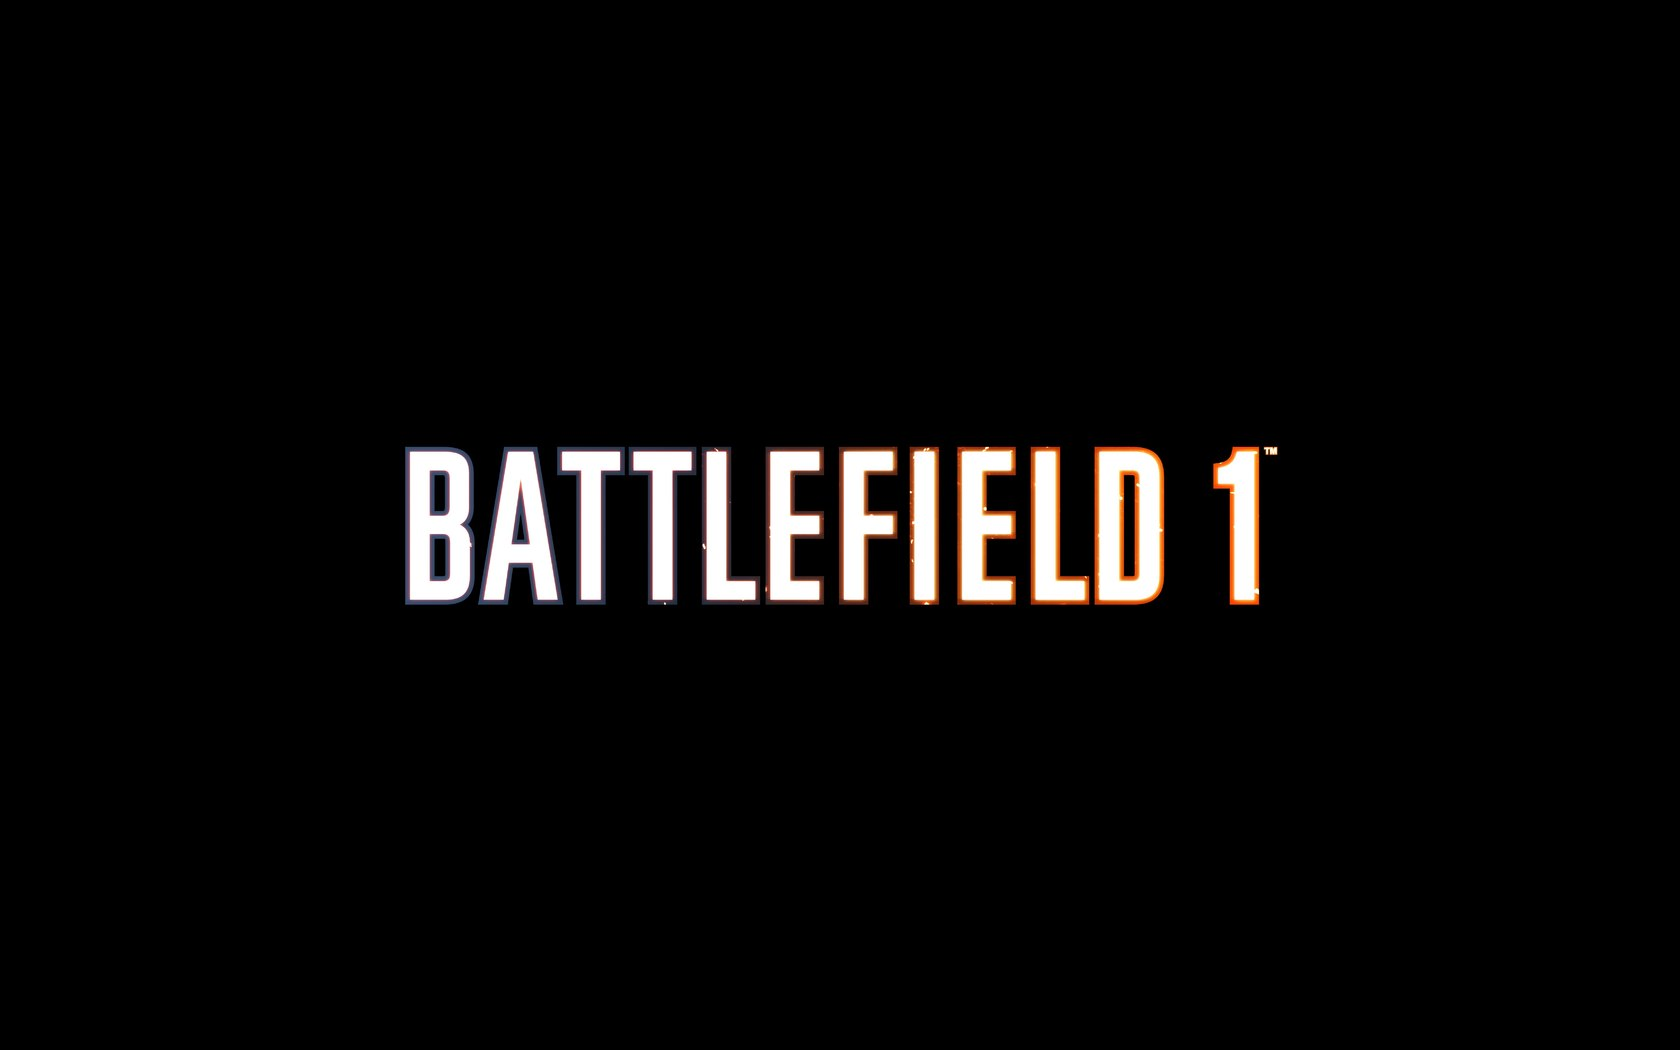 Why the Gaming Industry Needs Battlefield 1